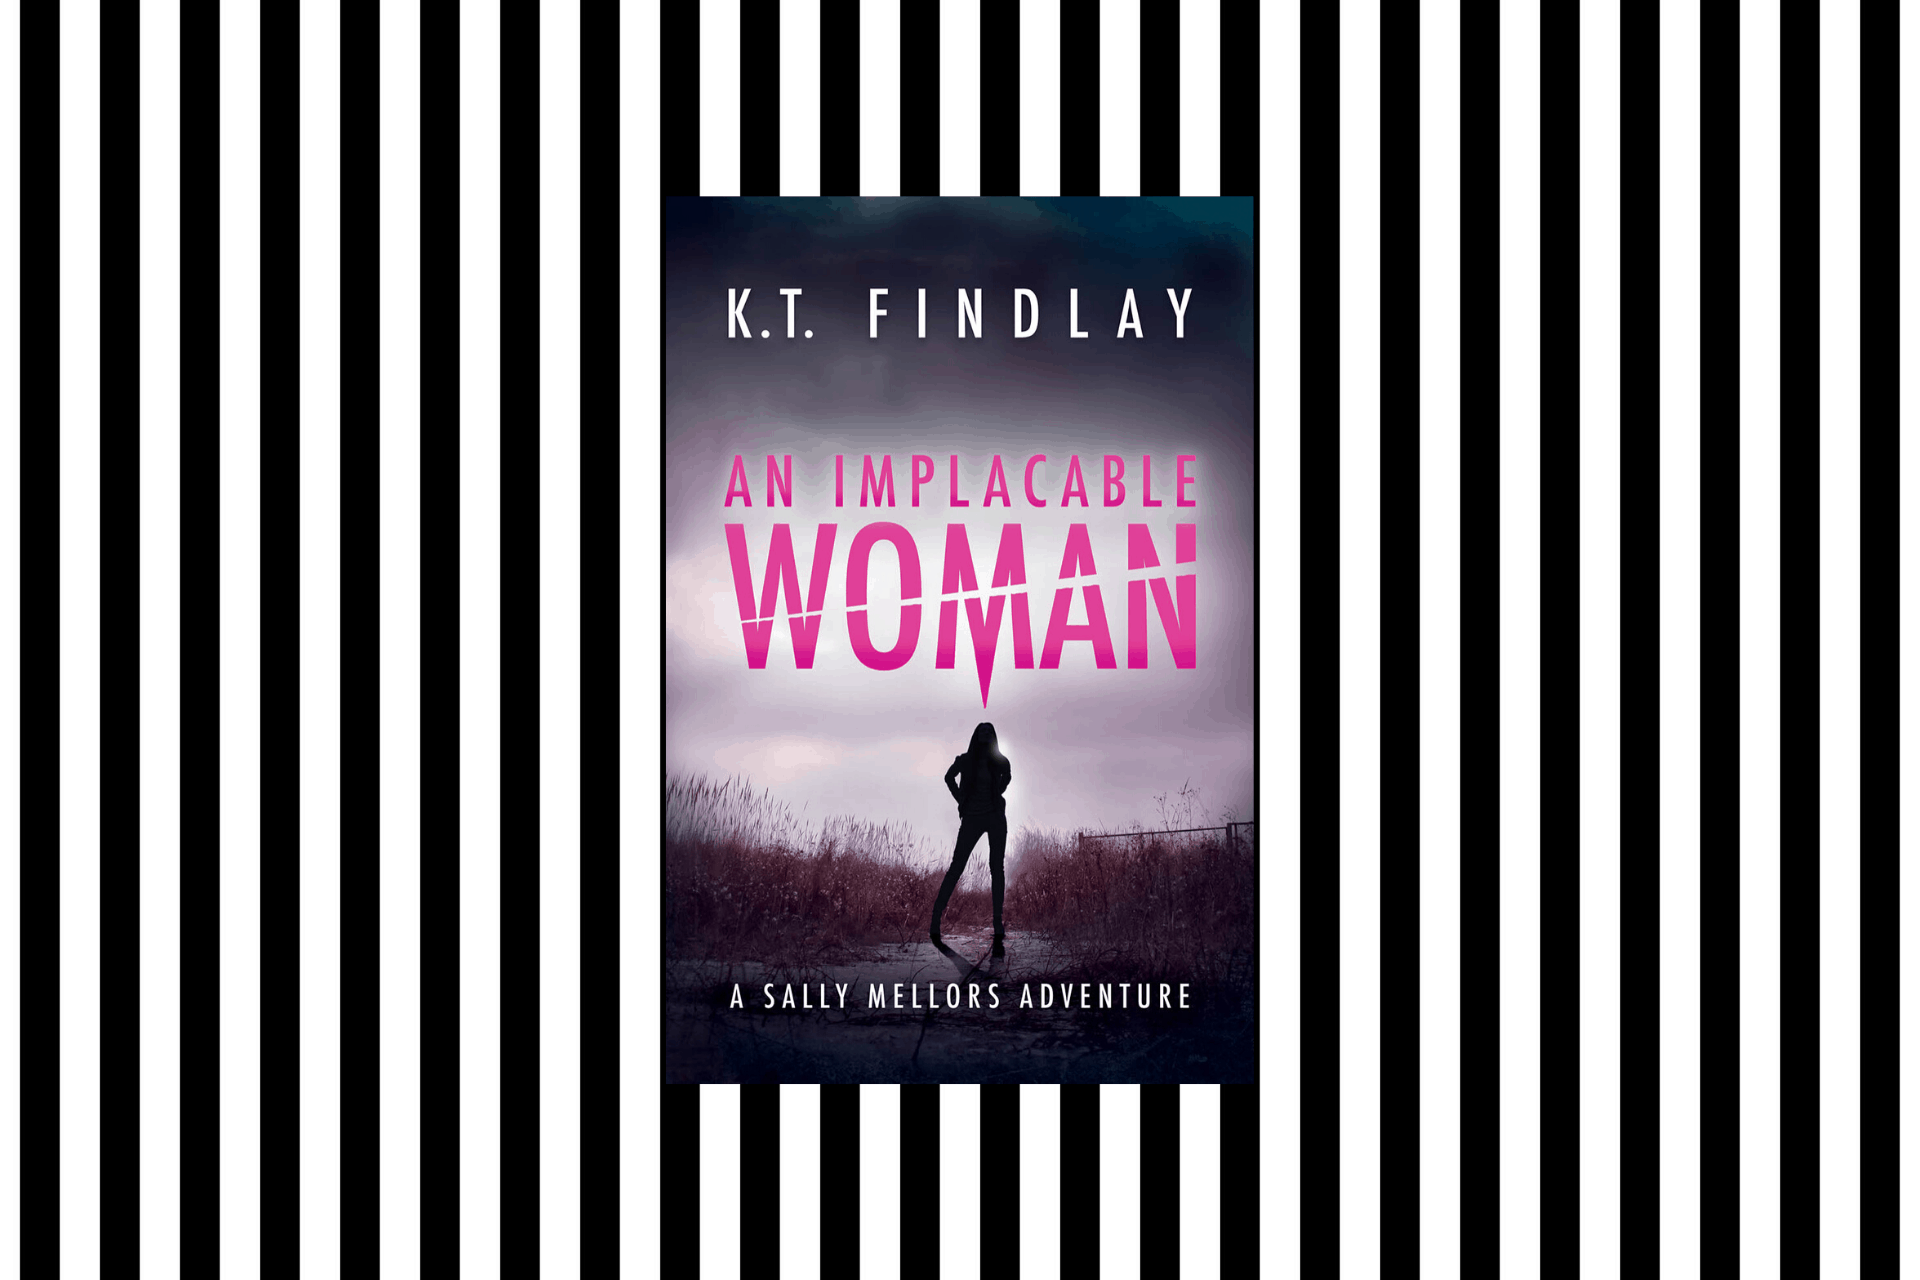 An Implacable Woman by K T Findlay